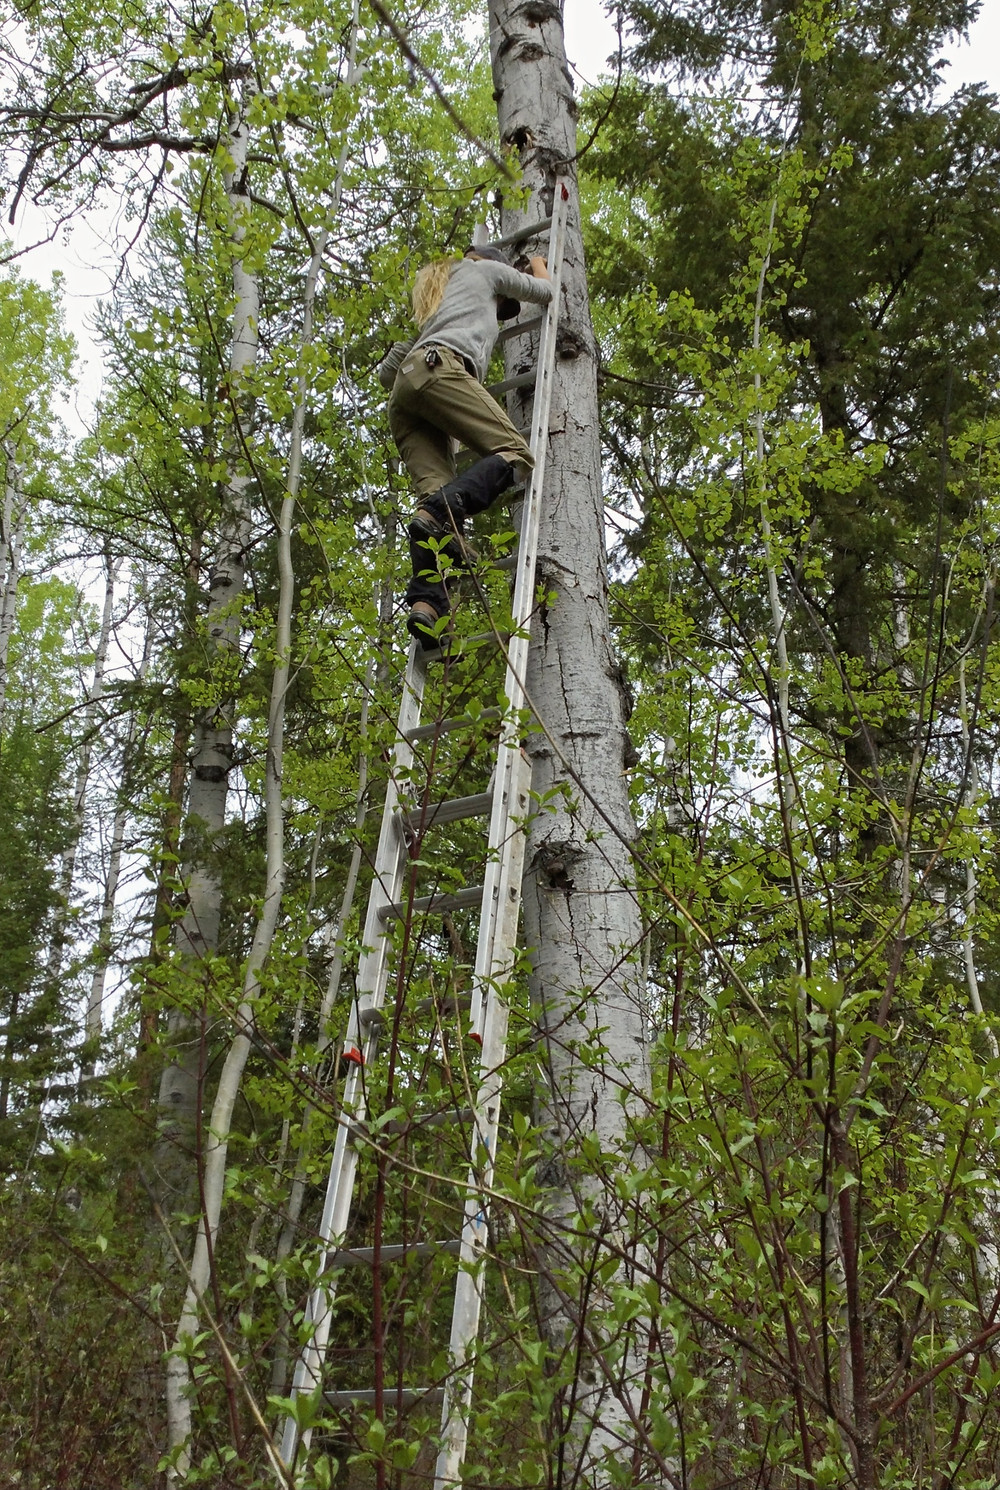 Person climbing ladder propped against aspen tree in the woods.